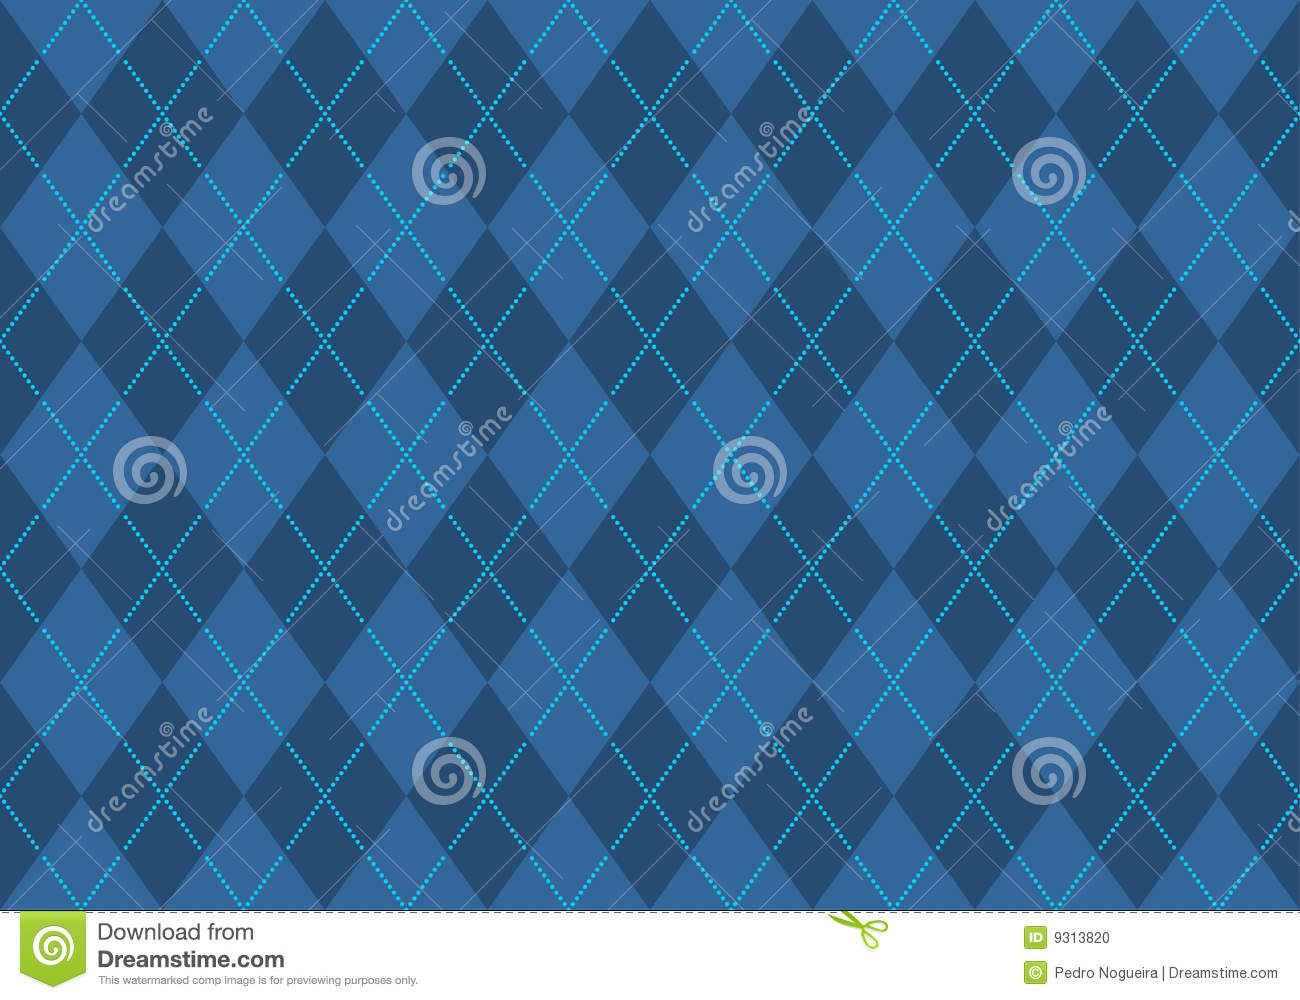 Blue Argyle Wallpaper Stock Vector. Illustration Of